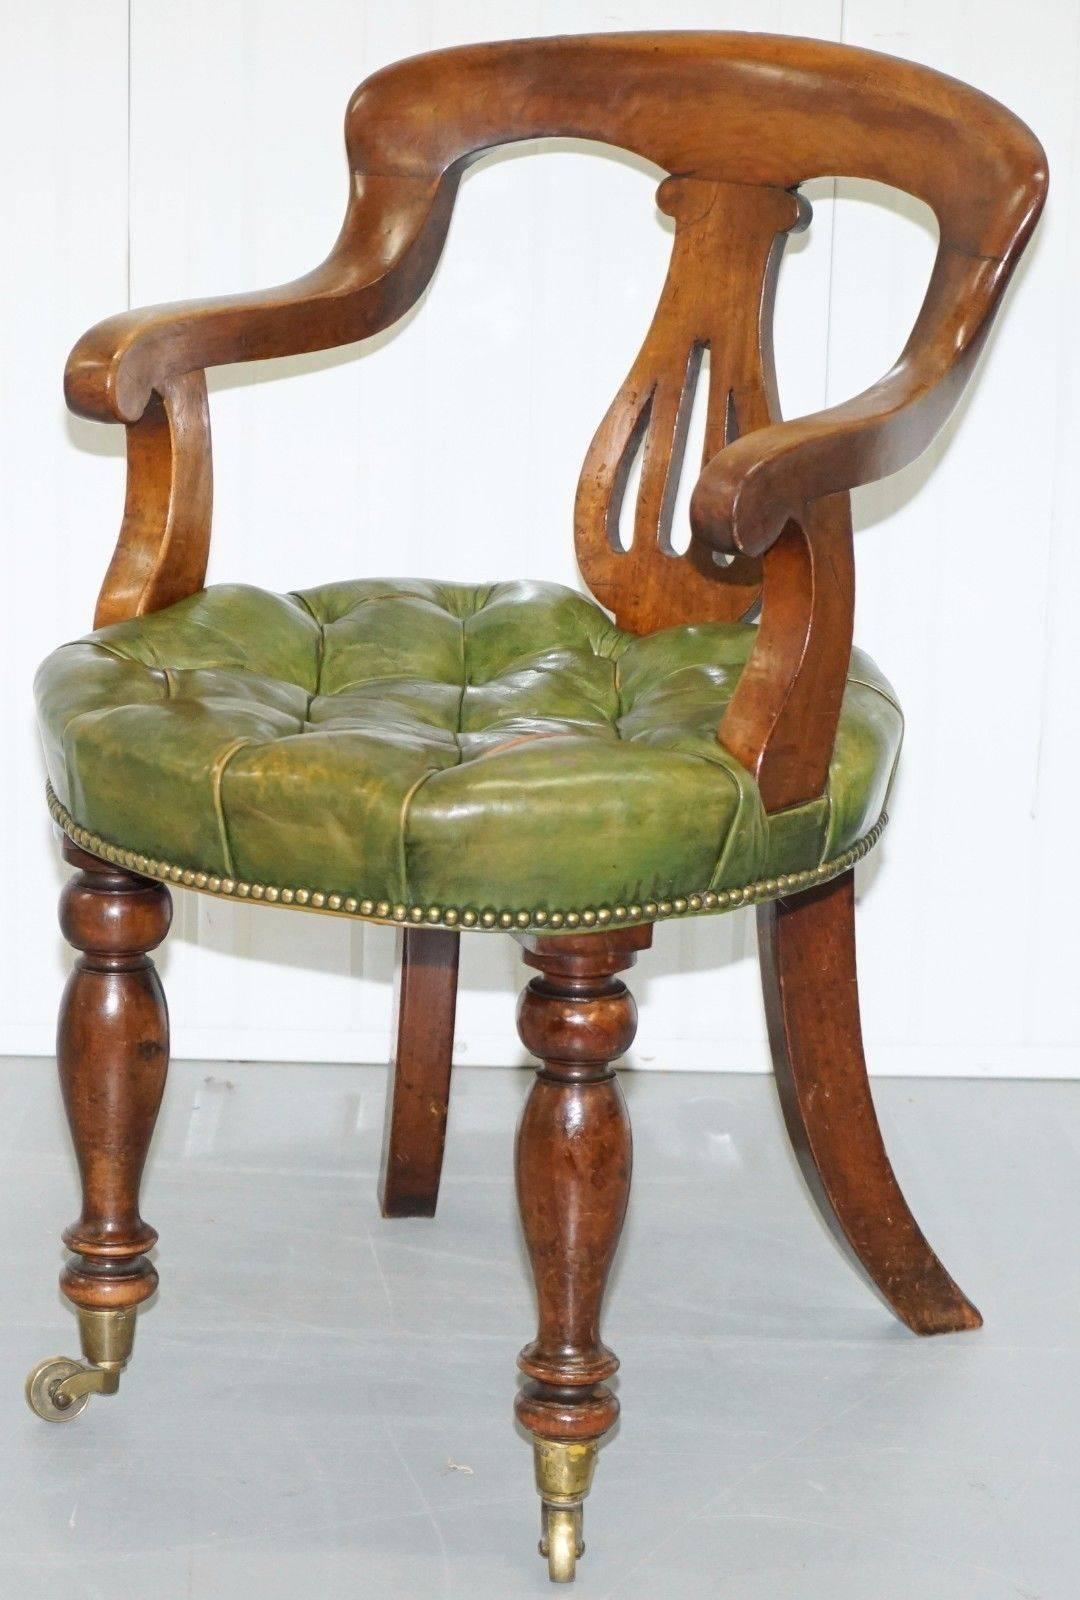 Late Victorian Rare Victorian Mahogany Framed Chesterfield Green Leather  Desk Chair Hand Dyed For Sale